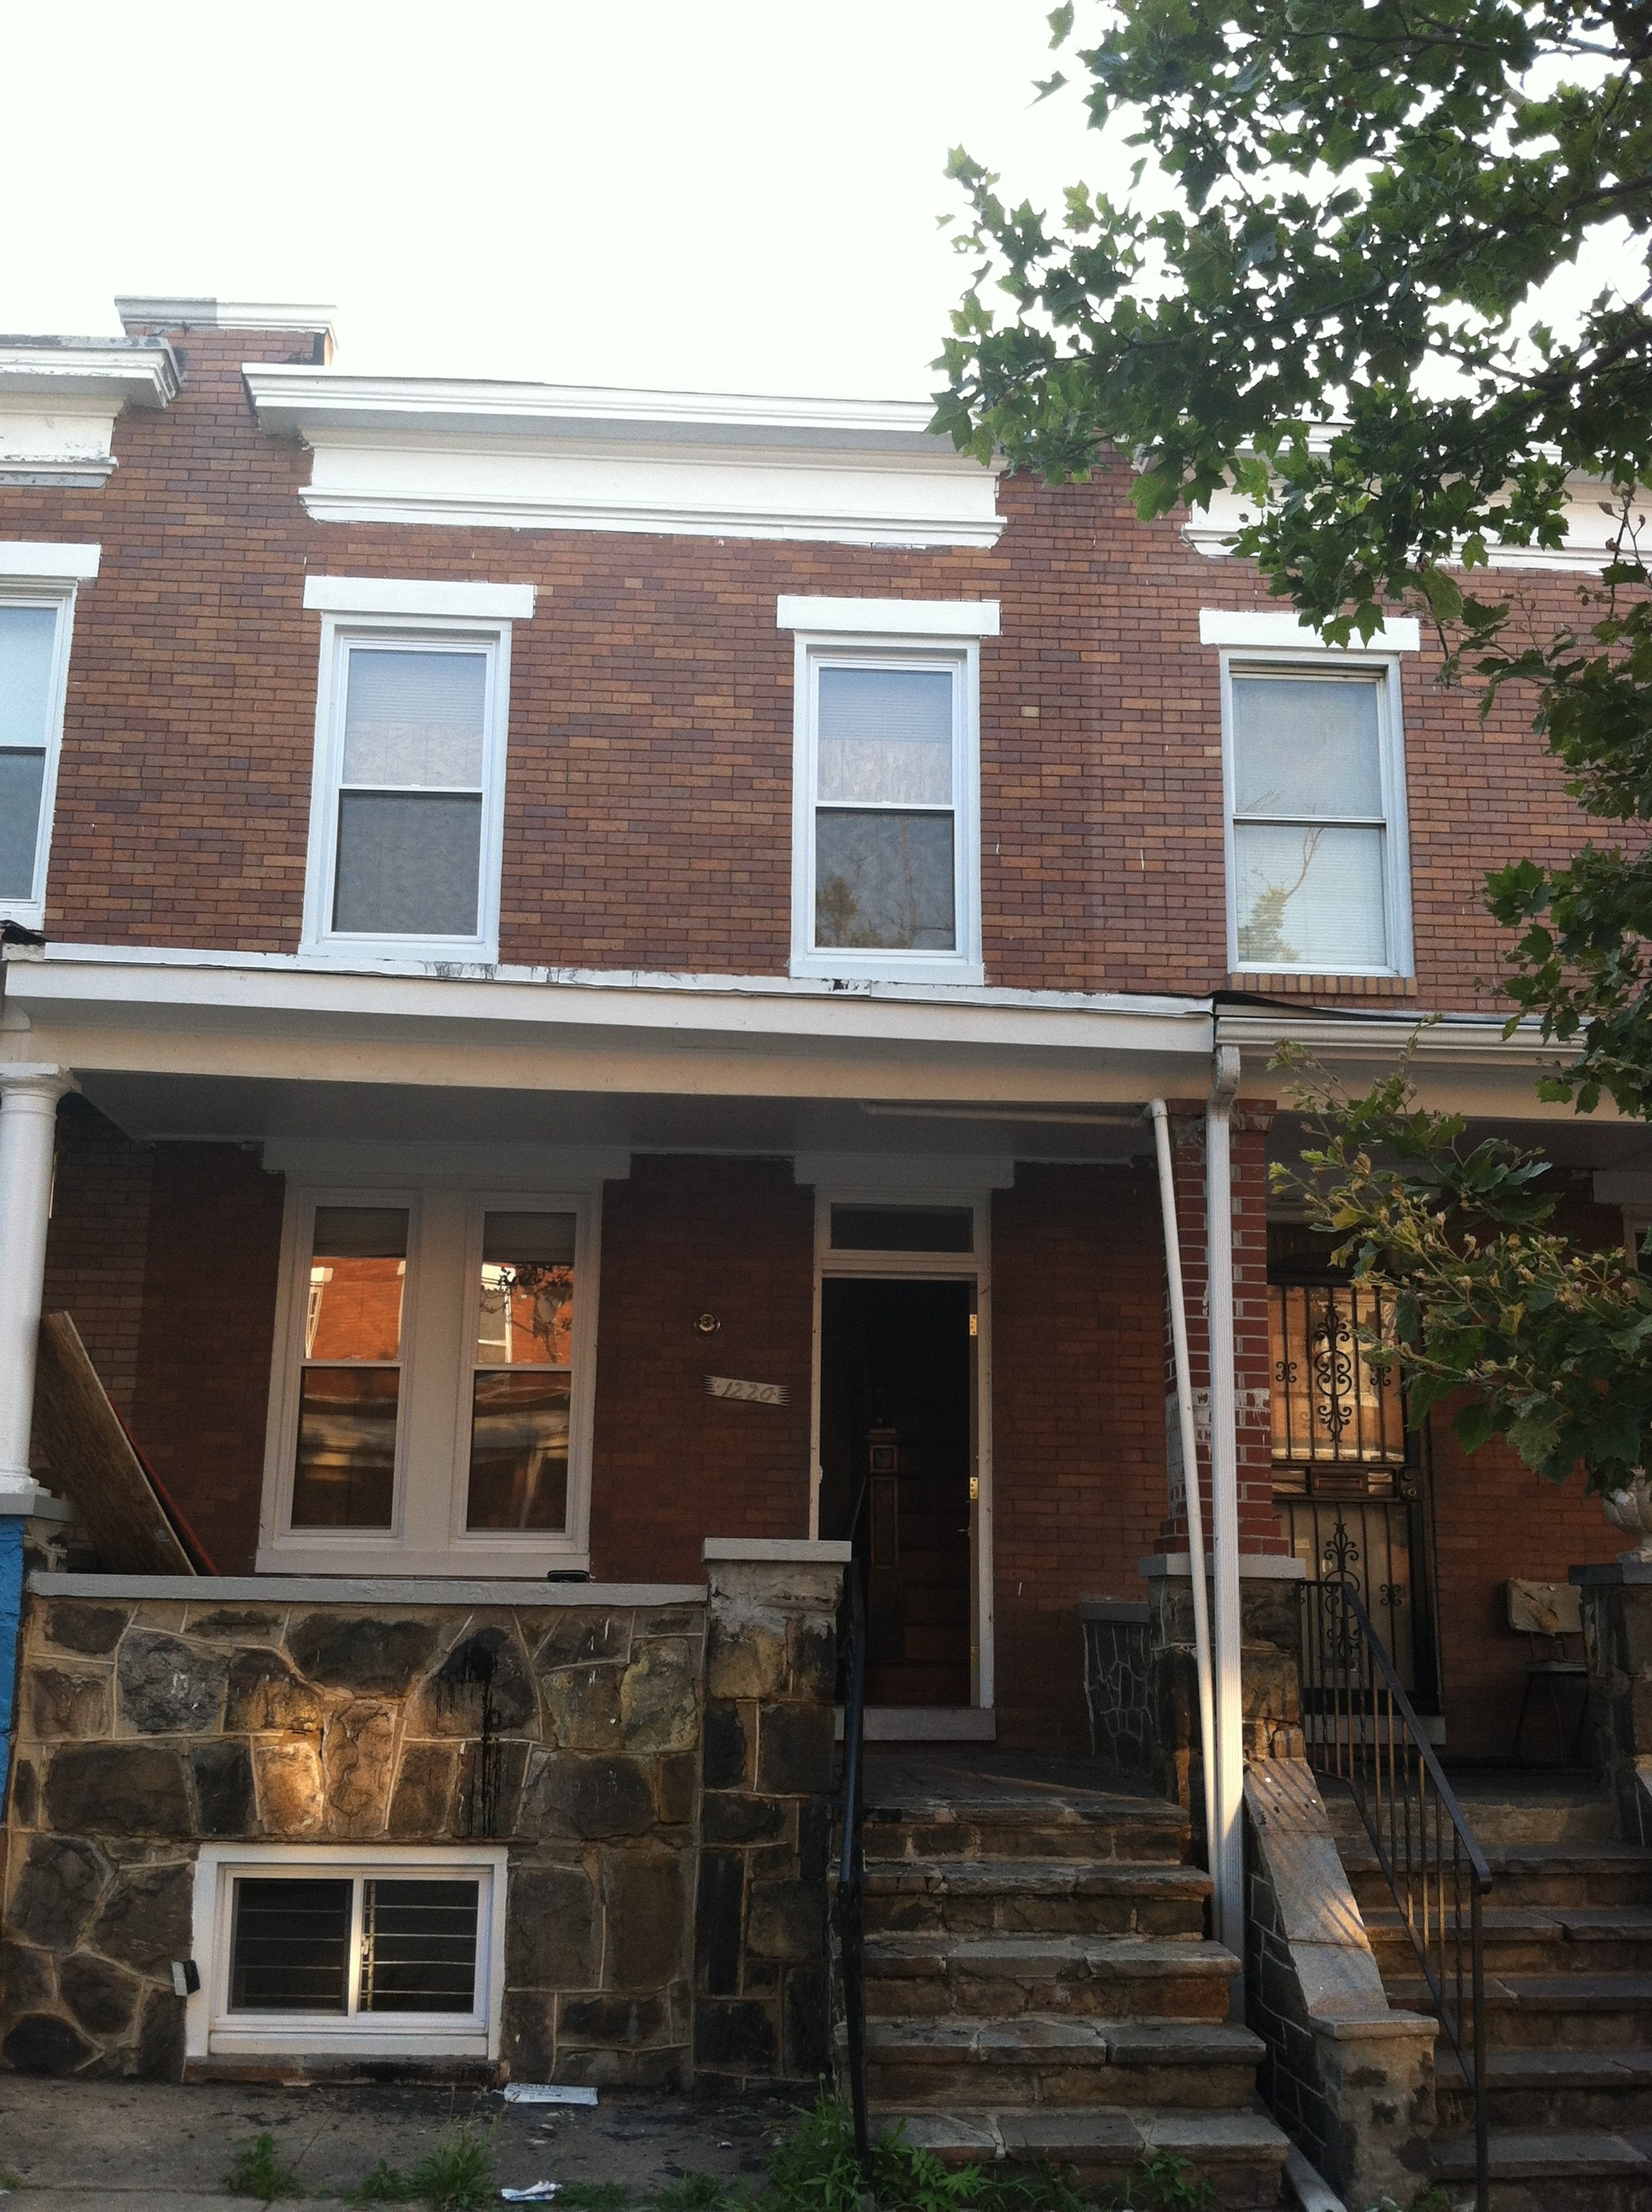 3 bedroom houses for rent in jackson tn 1220 n potomac st baltimore md 21213 3 bedroom apartment 21214